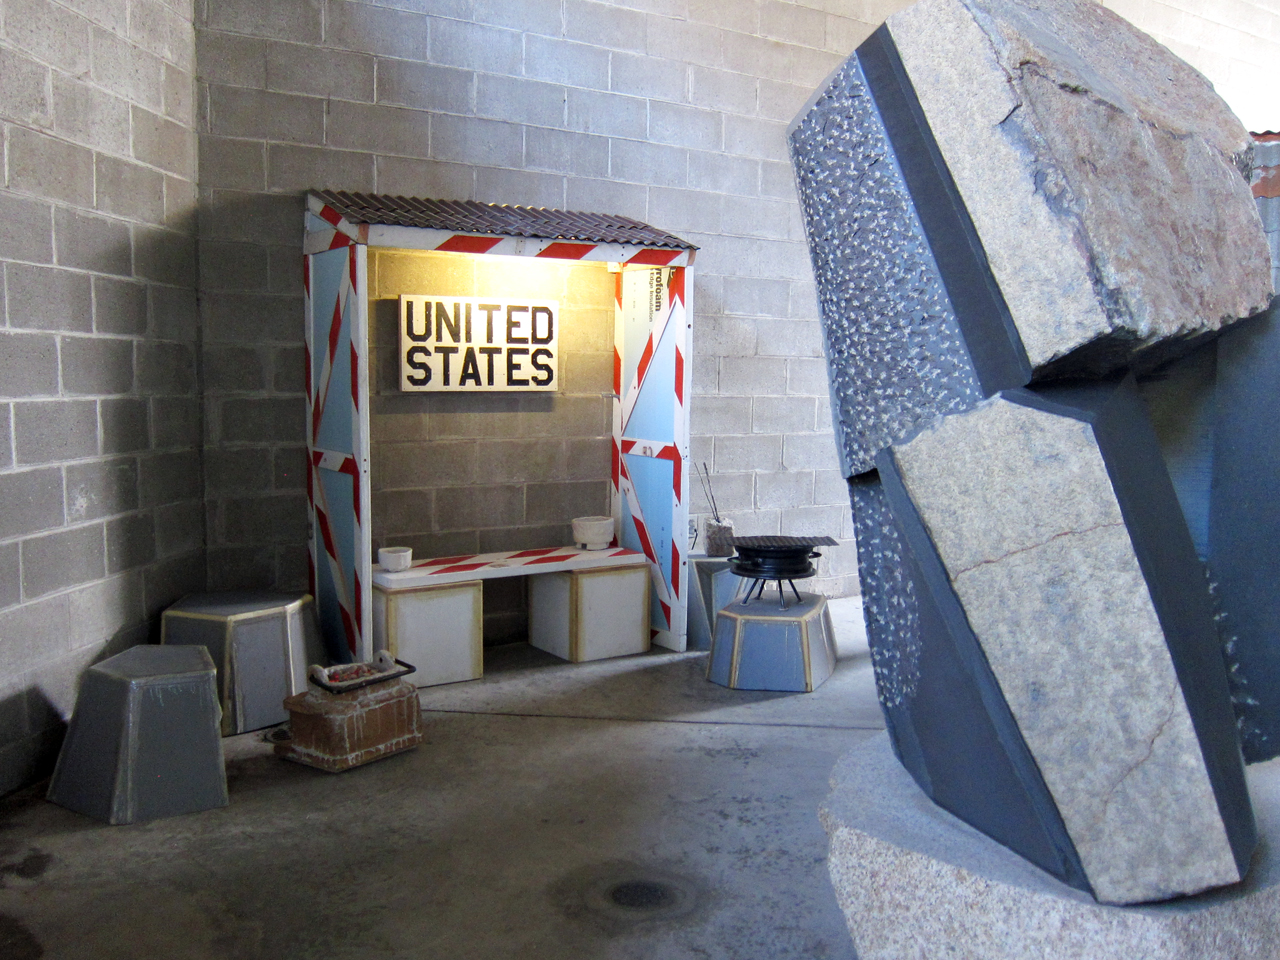 Installation view of 'Tom Sachs: Tea Ceremony' at the Noguchi Museum